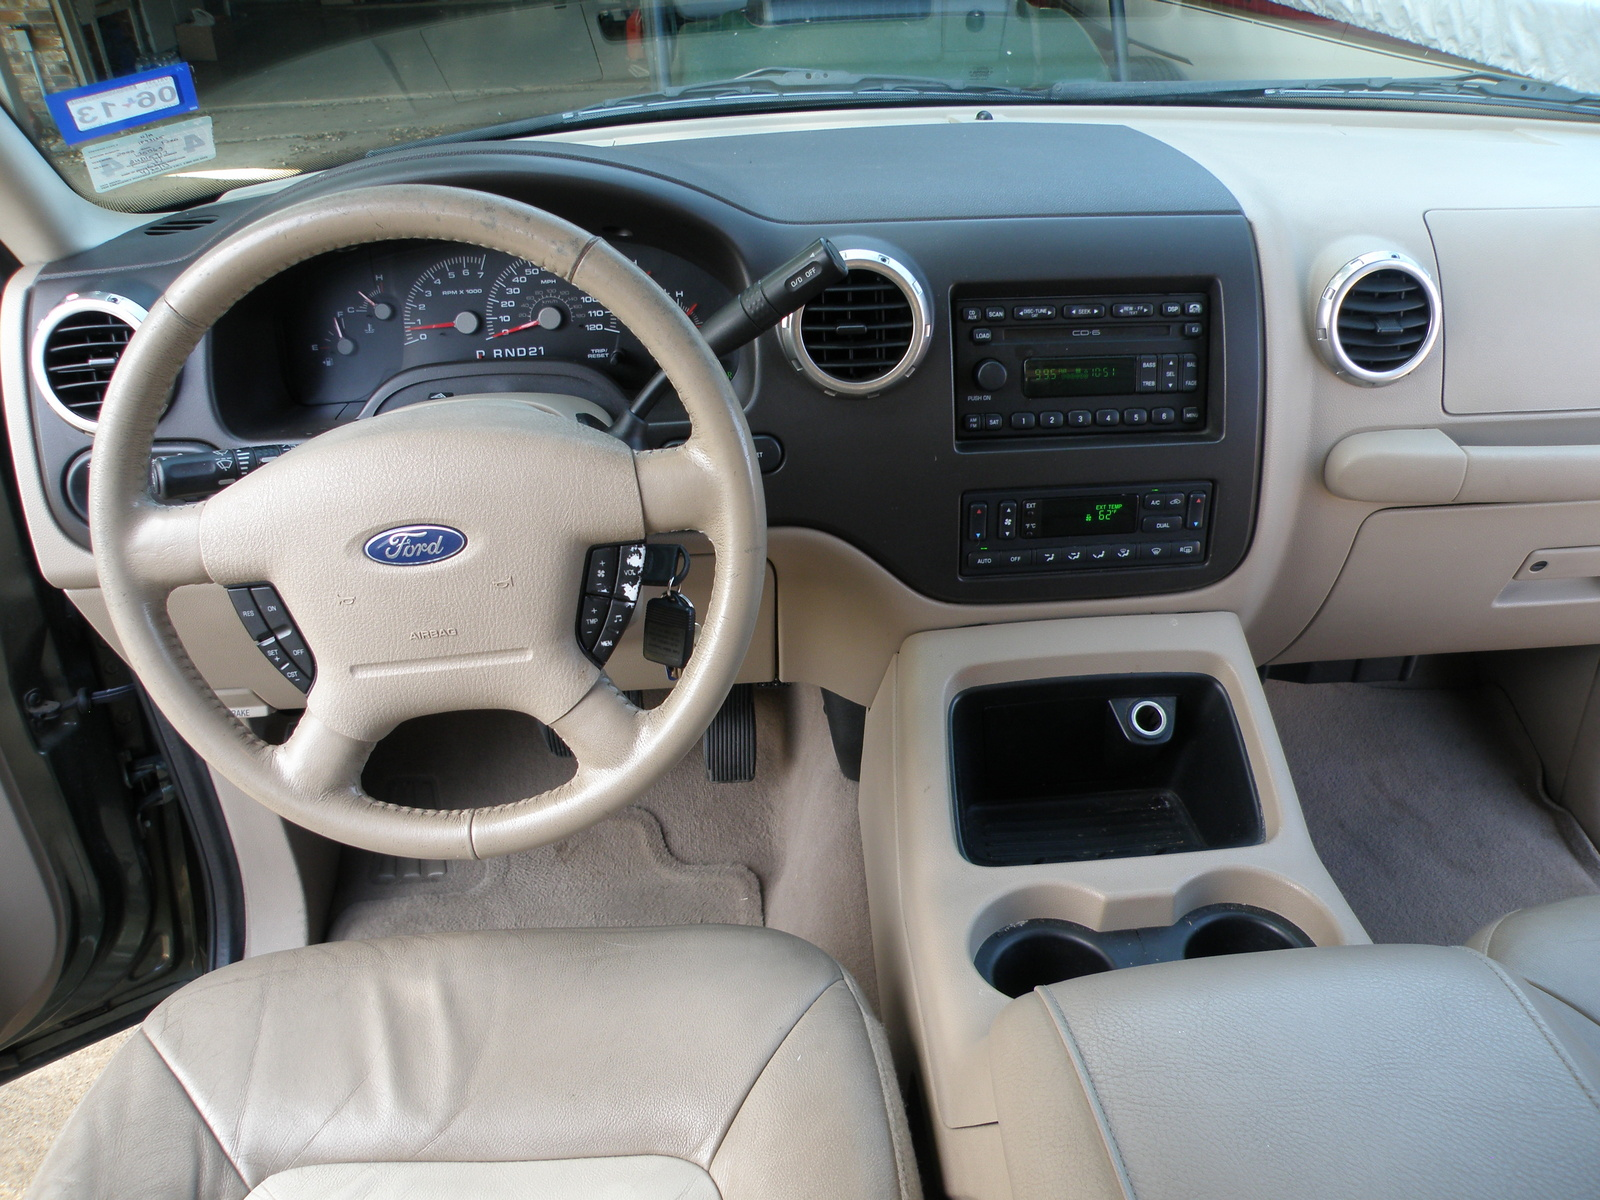 2004 Ford Expedition Photos Informations Articles Where Is The Fuse Box On 9